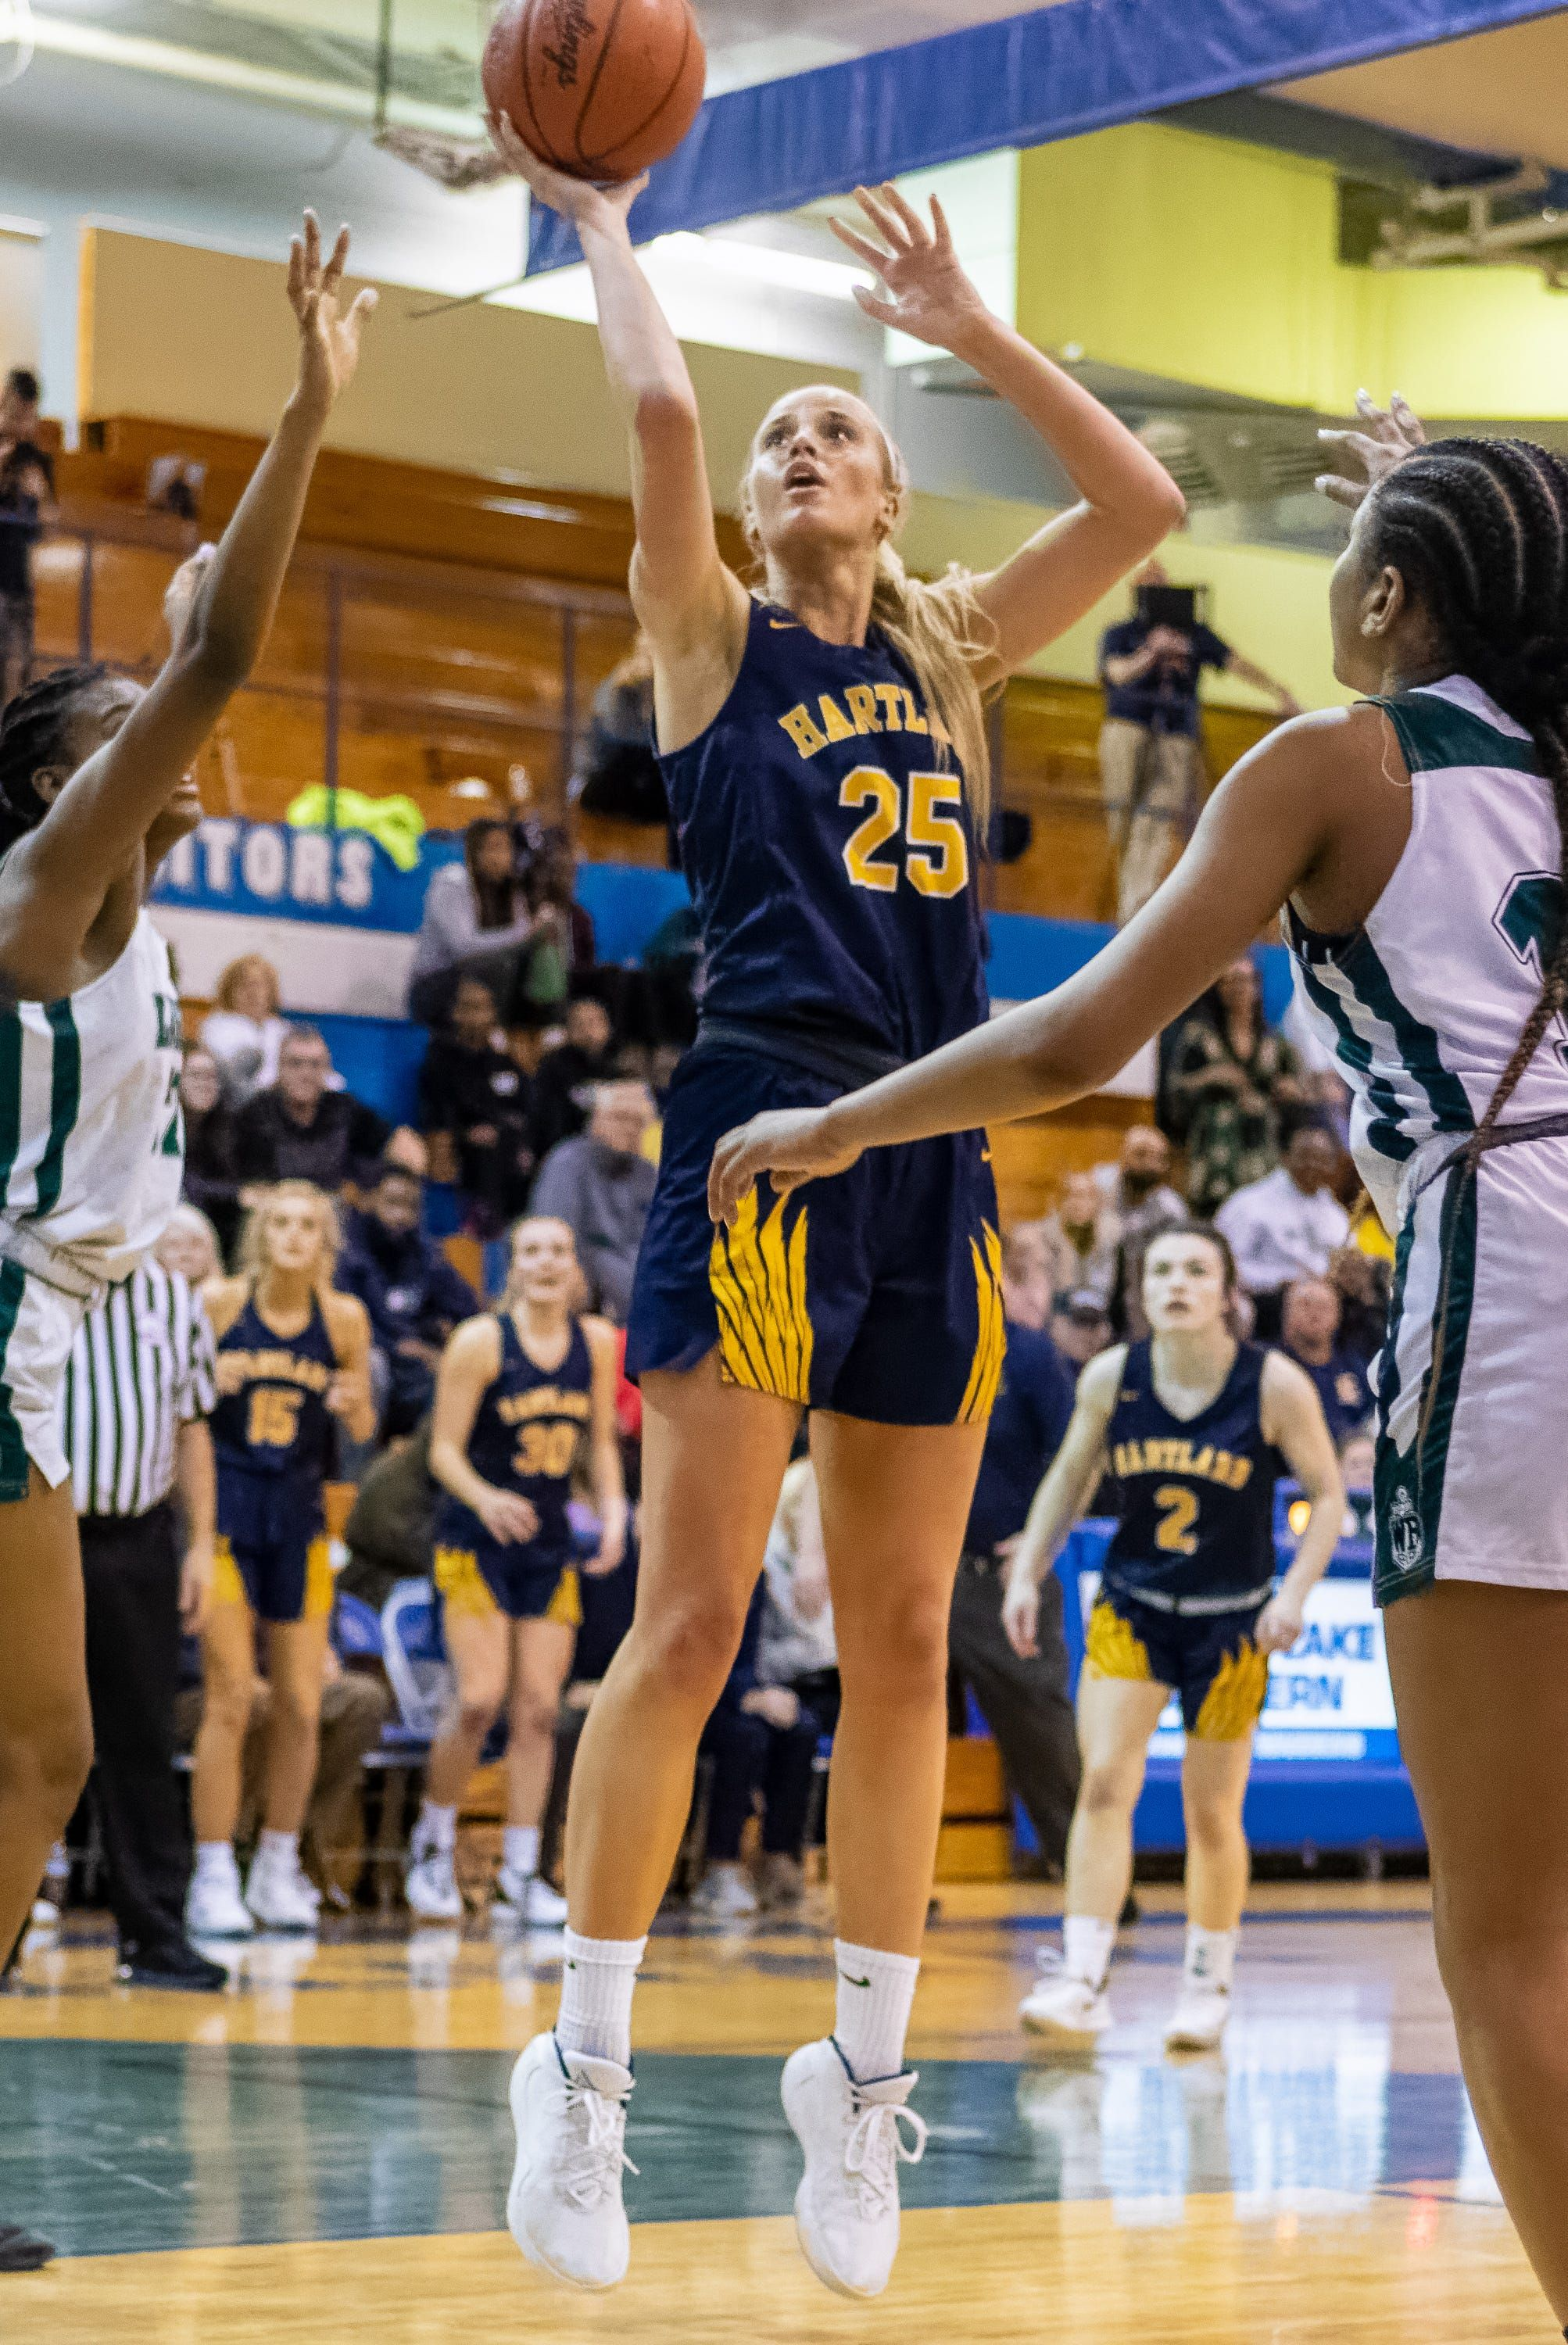 Michigan High School Girls Basketball Playoffs Top Performers Scores From Regional Semis In 2020 Basketball Girls Basketball Girls Outfits Basketball Clothes